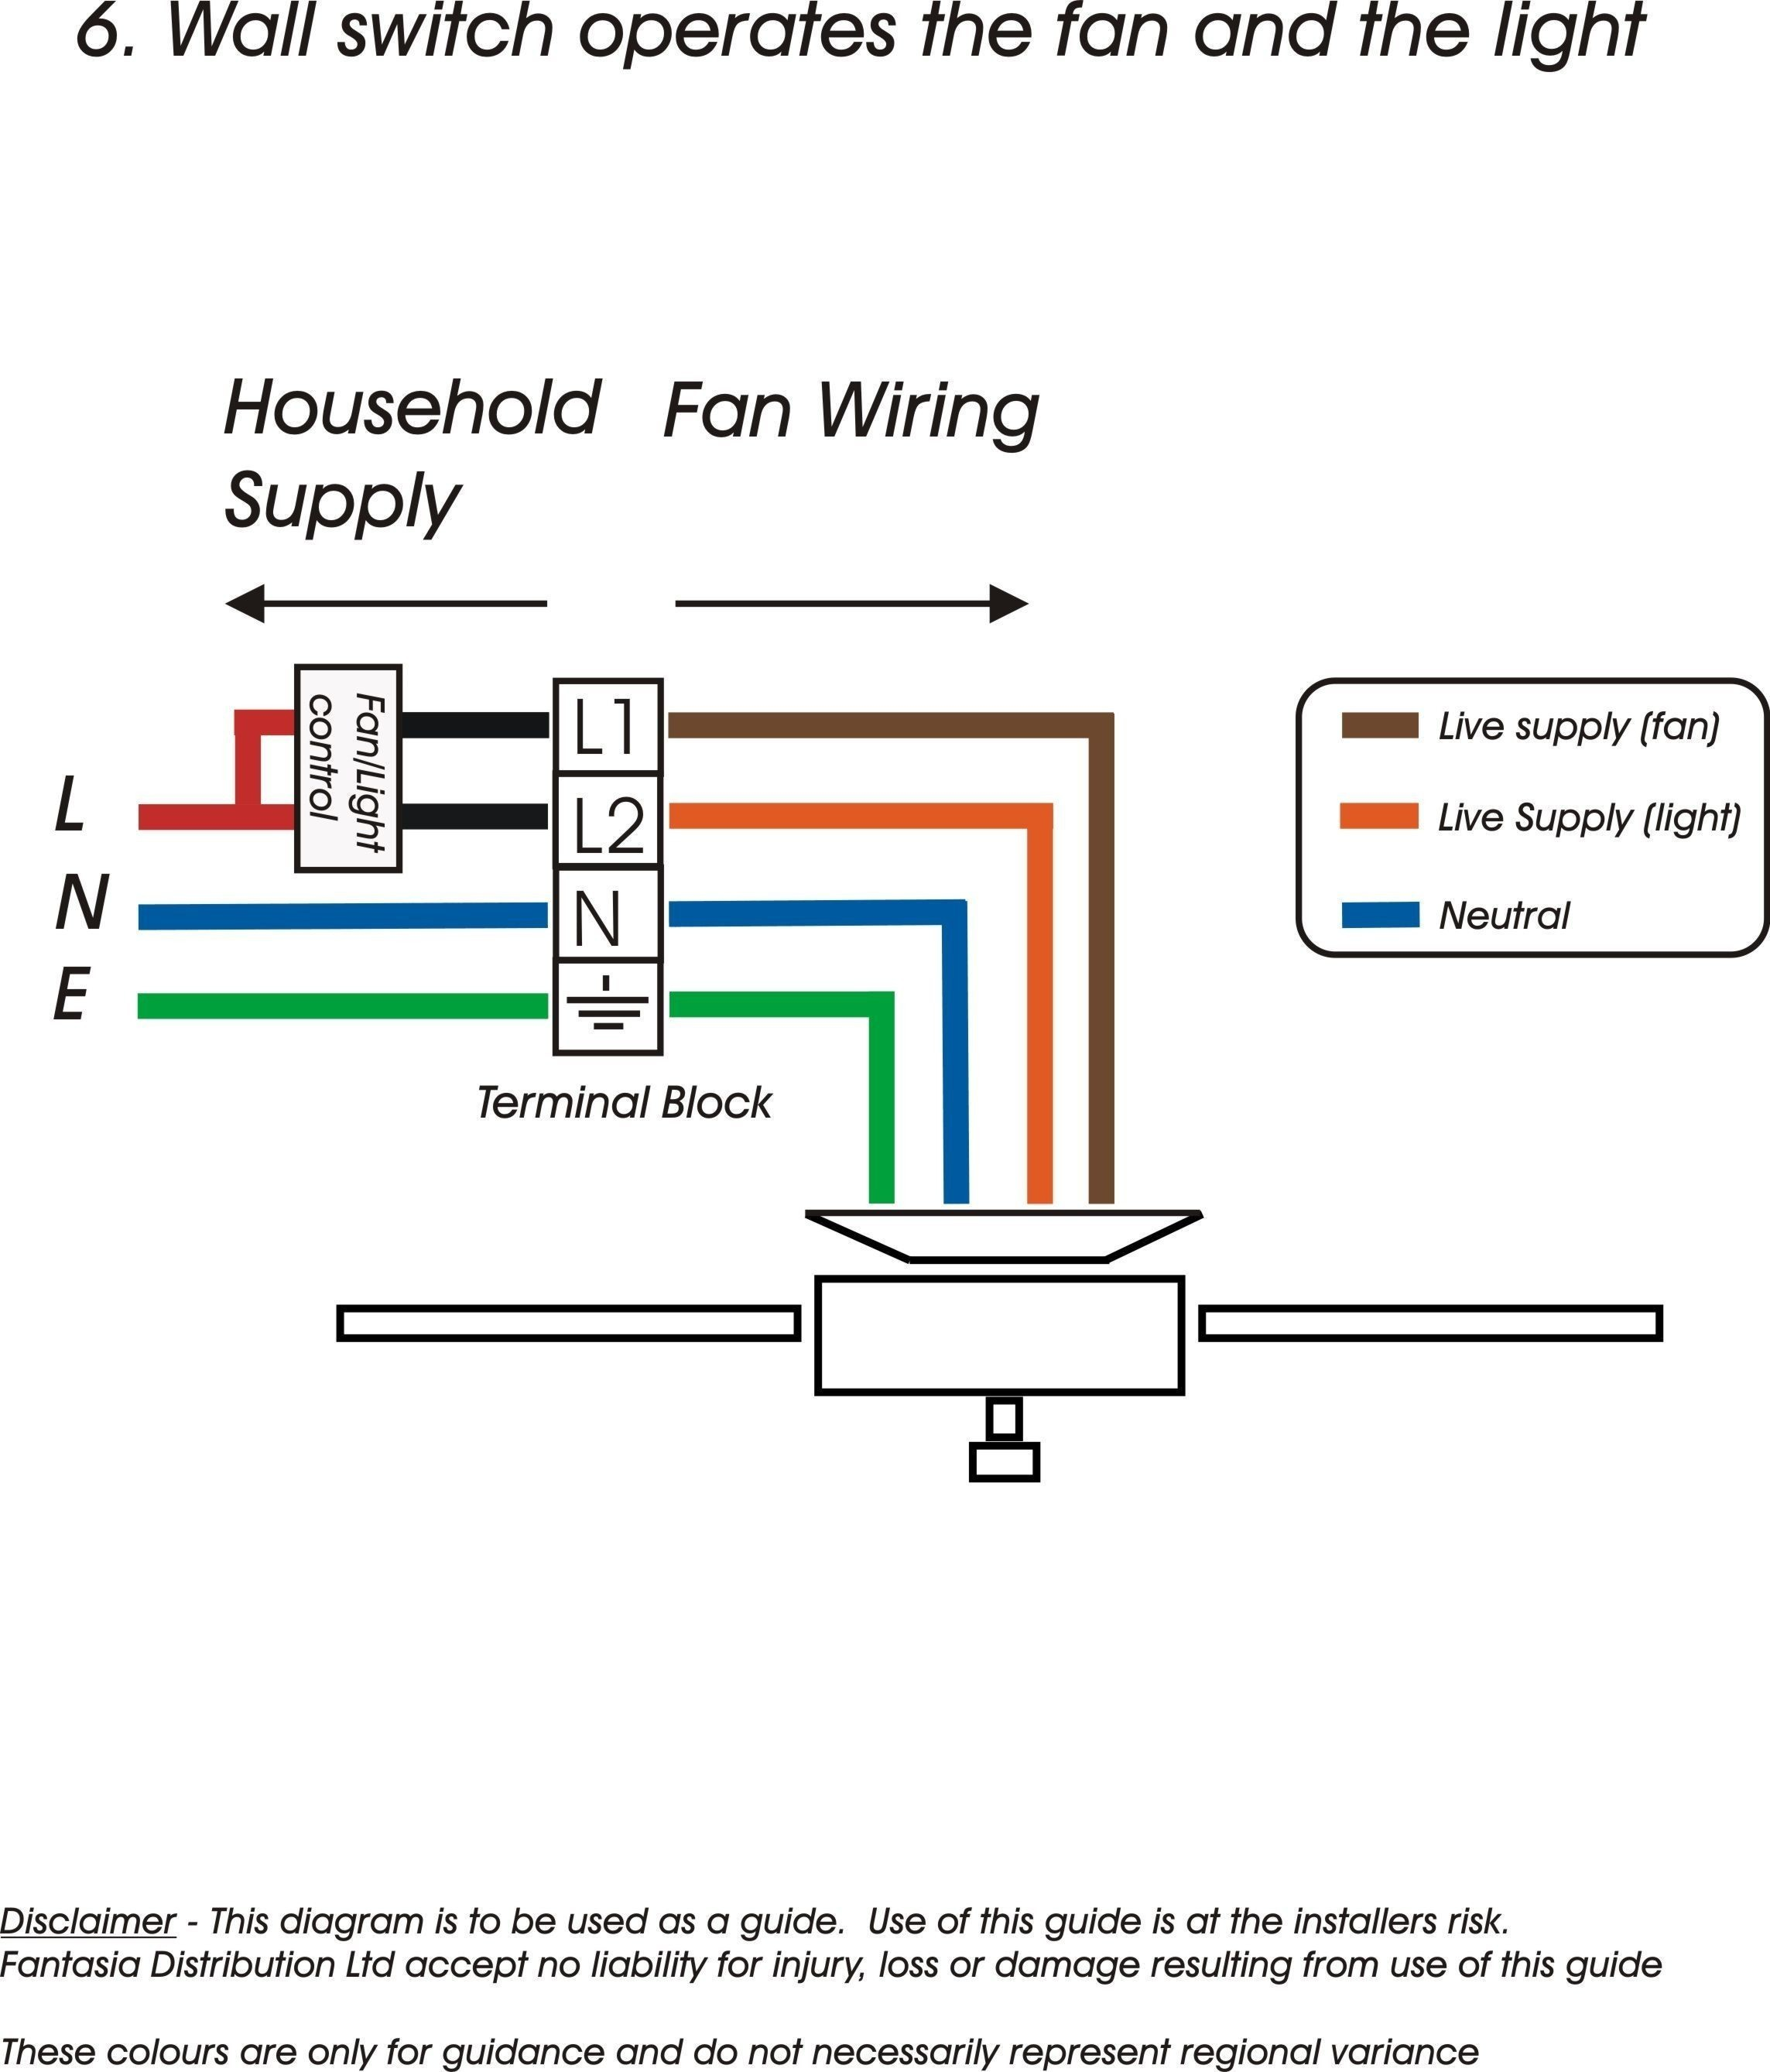 Wondrous Table Fan Wiring Diagram Wiring Library Wiring Cloud Ostrrenstrafr09Org